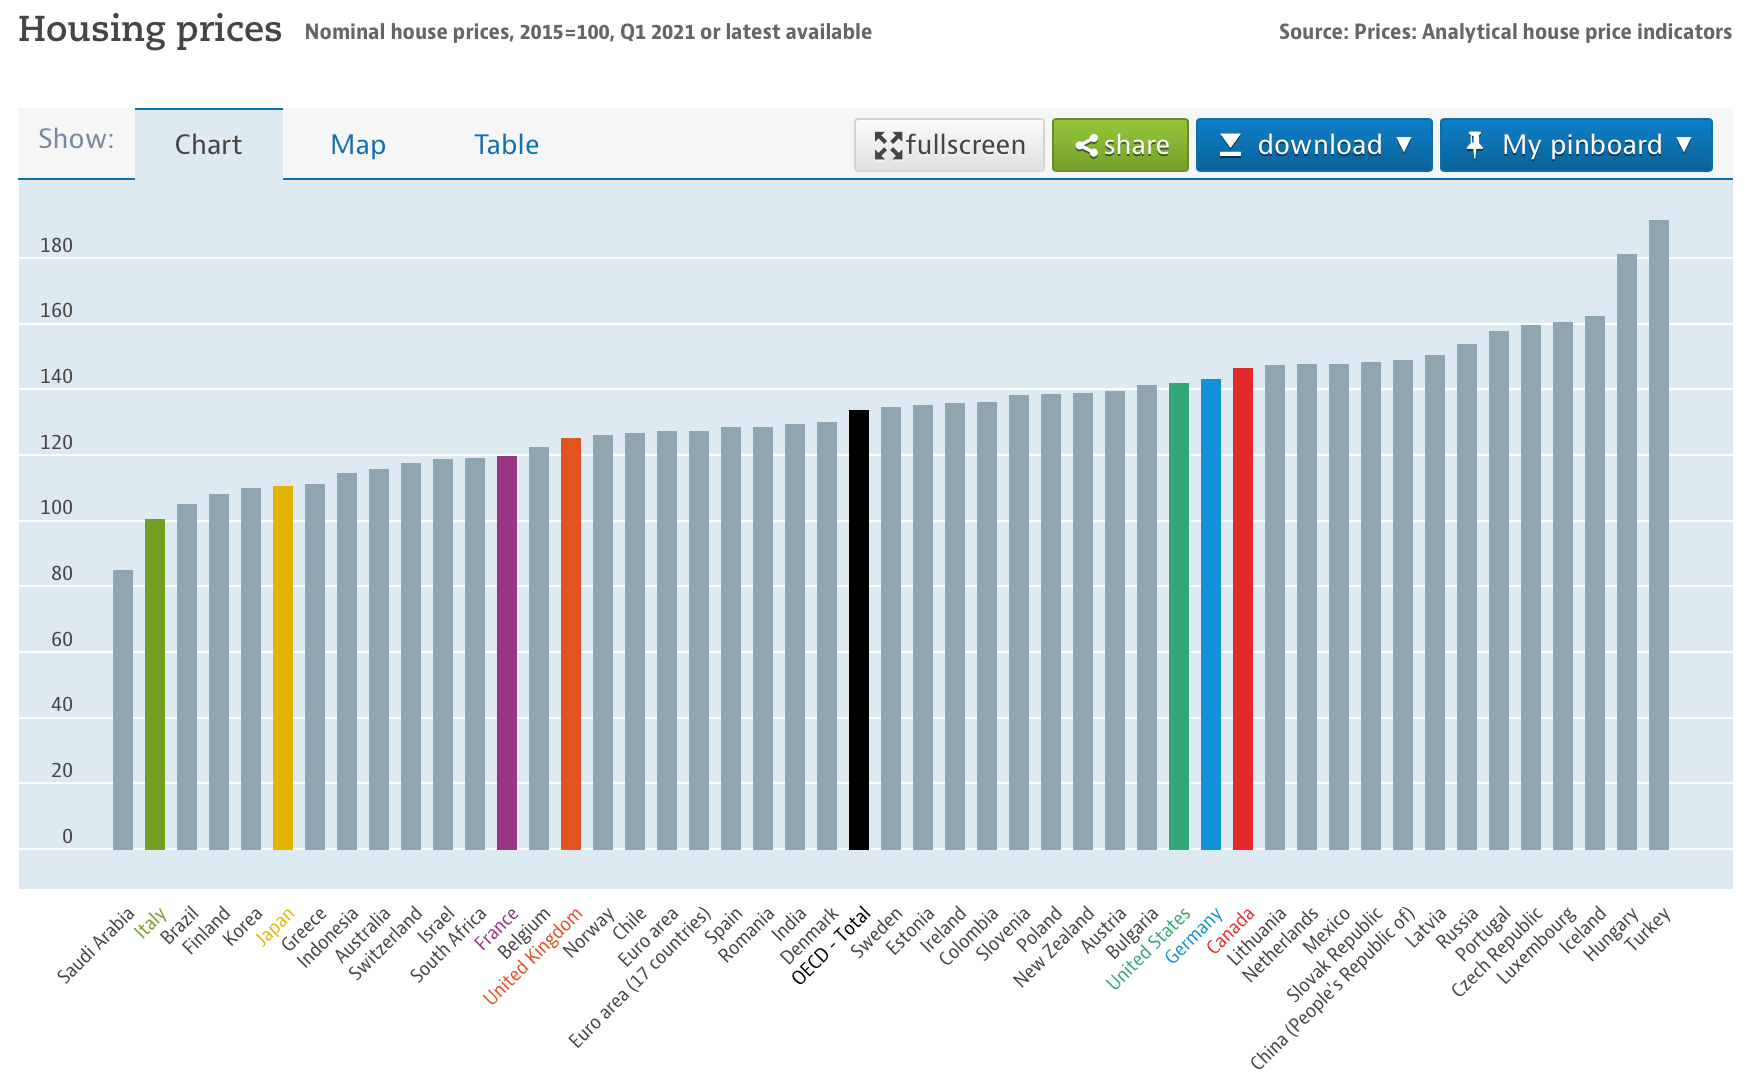 Why is United States Property so cheap? real house prices across the OECD